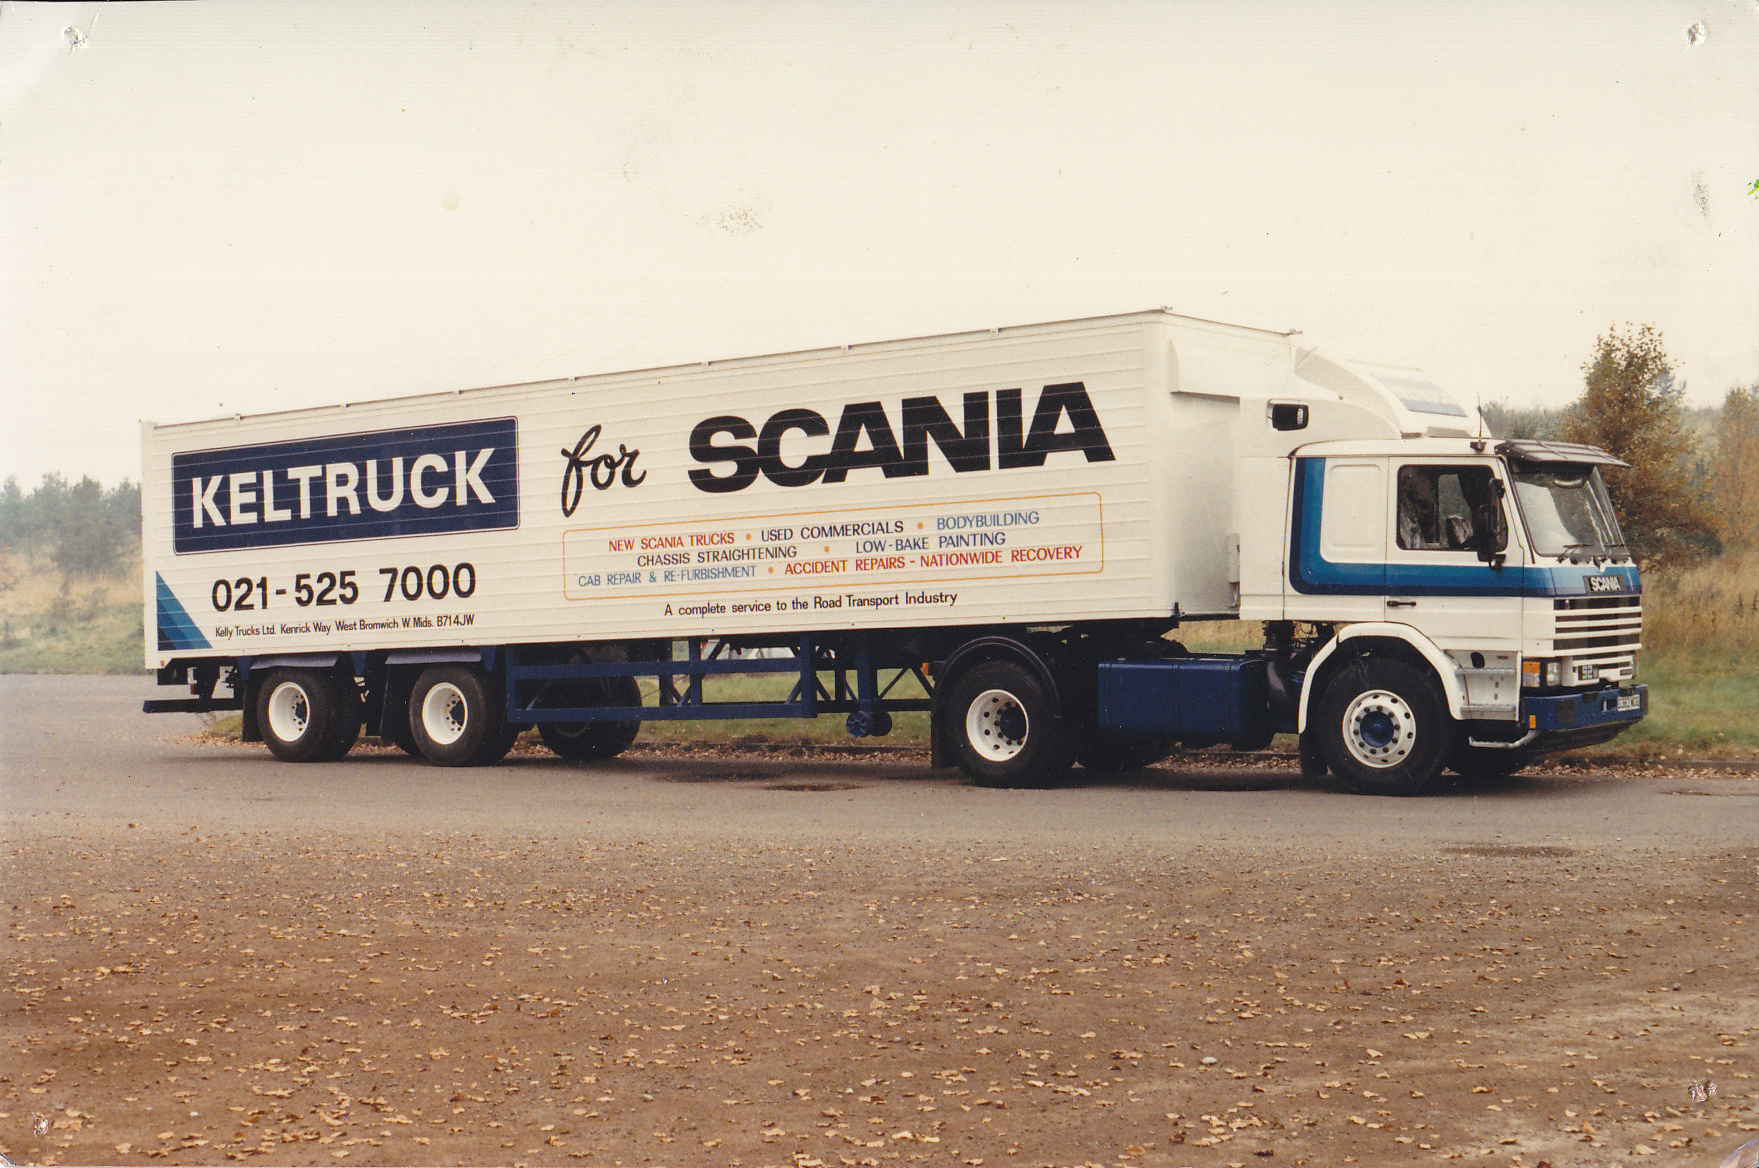 Keltruck's Scania P92 demonstrator